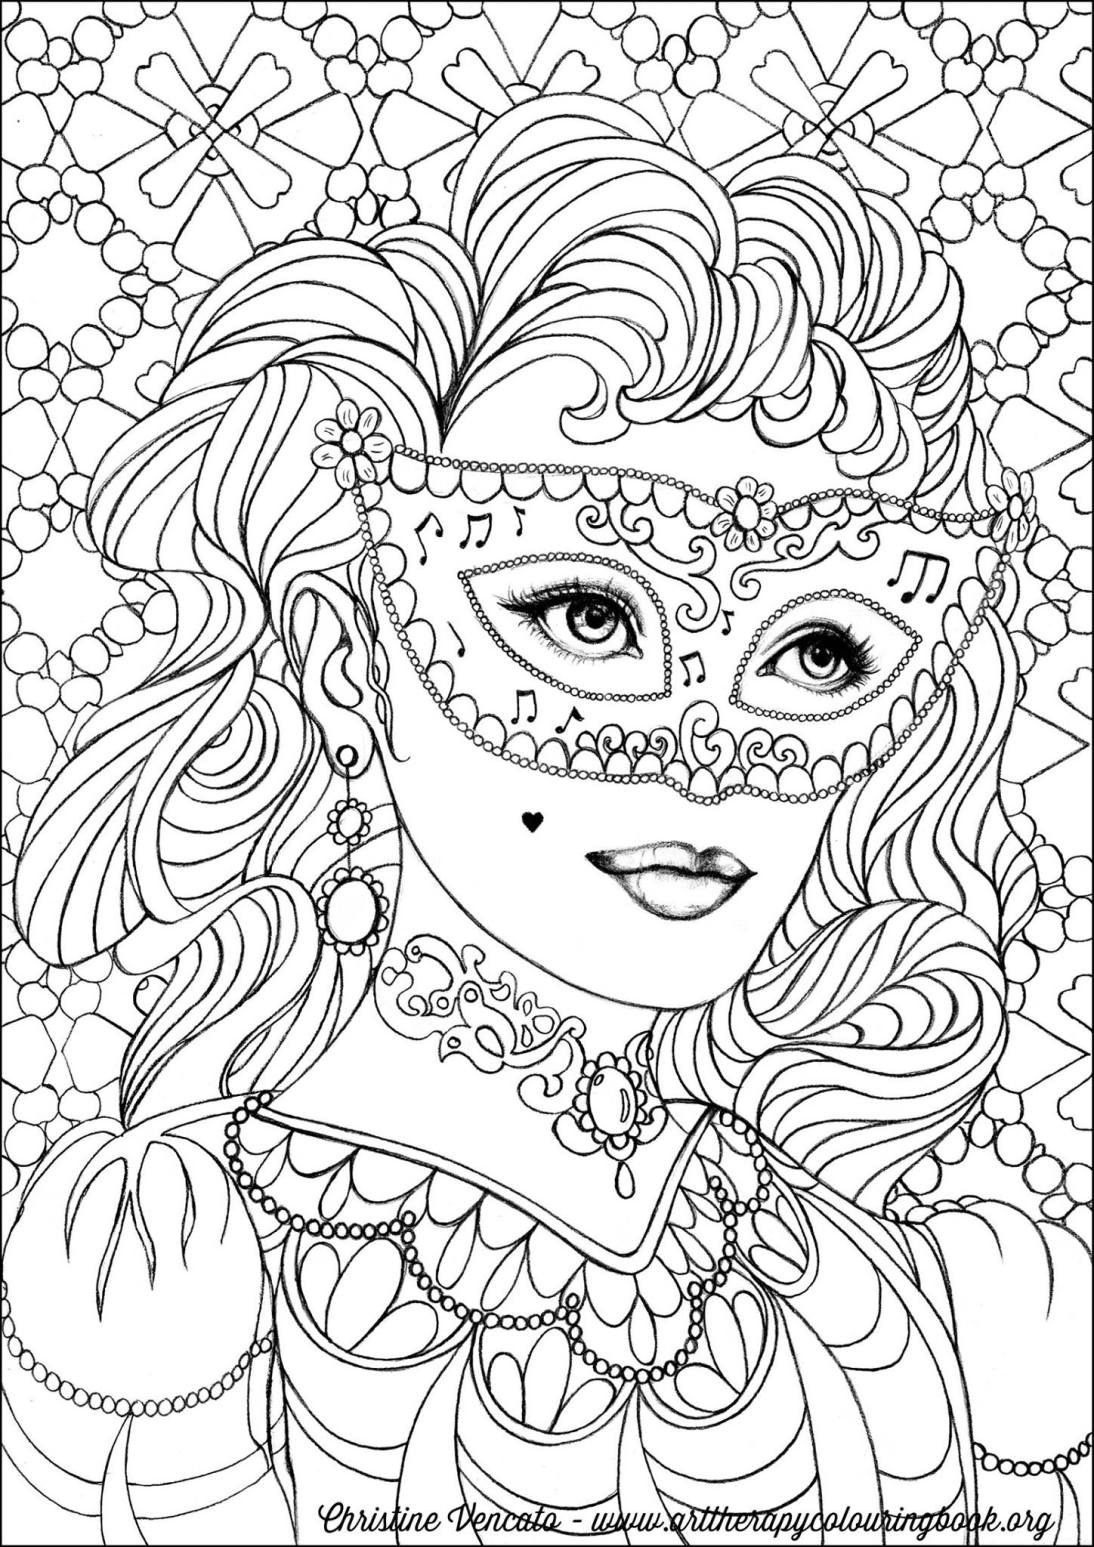 free coloring page from adult coloring worldwide. art